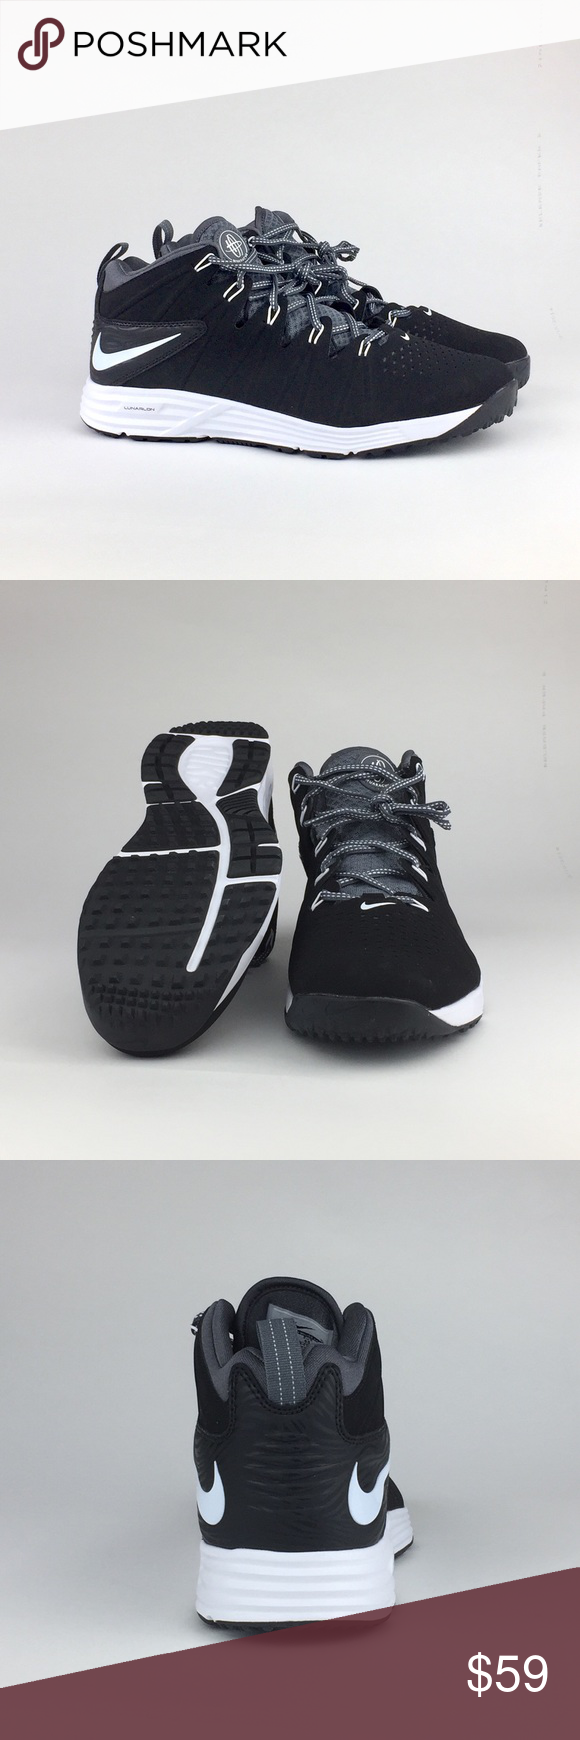 Nike Huarache 4 Lax Turf Lunarlon Lacrosse NWOB Nike Huarache 4 Lax Turf Lunarlon Lacrosse Mid-Top Trainer (#684699-010), Men's US 11, Black/White/Dark Grey.  Awesome high-performing lacrosse trainer from Nike! * Lightweight synthetic leather provides a great performance fit. * Full-length Lunar midsole for zoned cushion & response. * Ultra-light synthetic enhanced with Nike FlyWire technology for midfoot support. * Solid rubber outsole with hybrid traction pattern and lateral outrigger for…